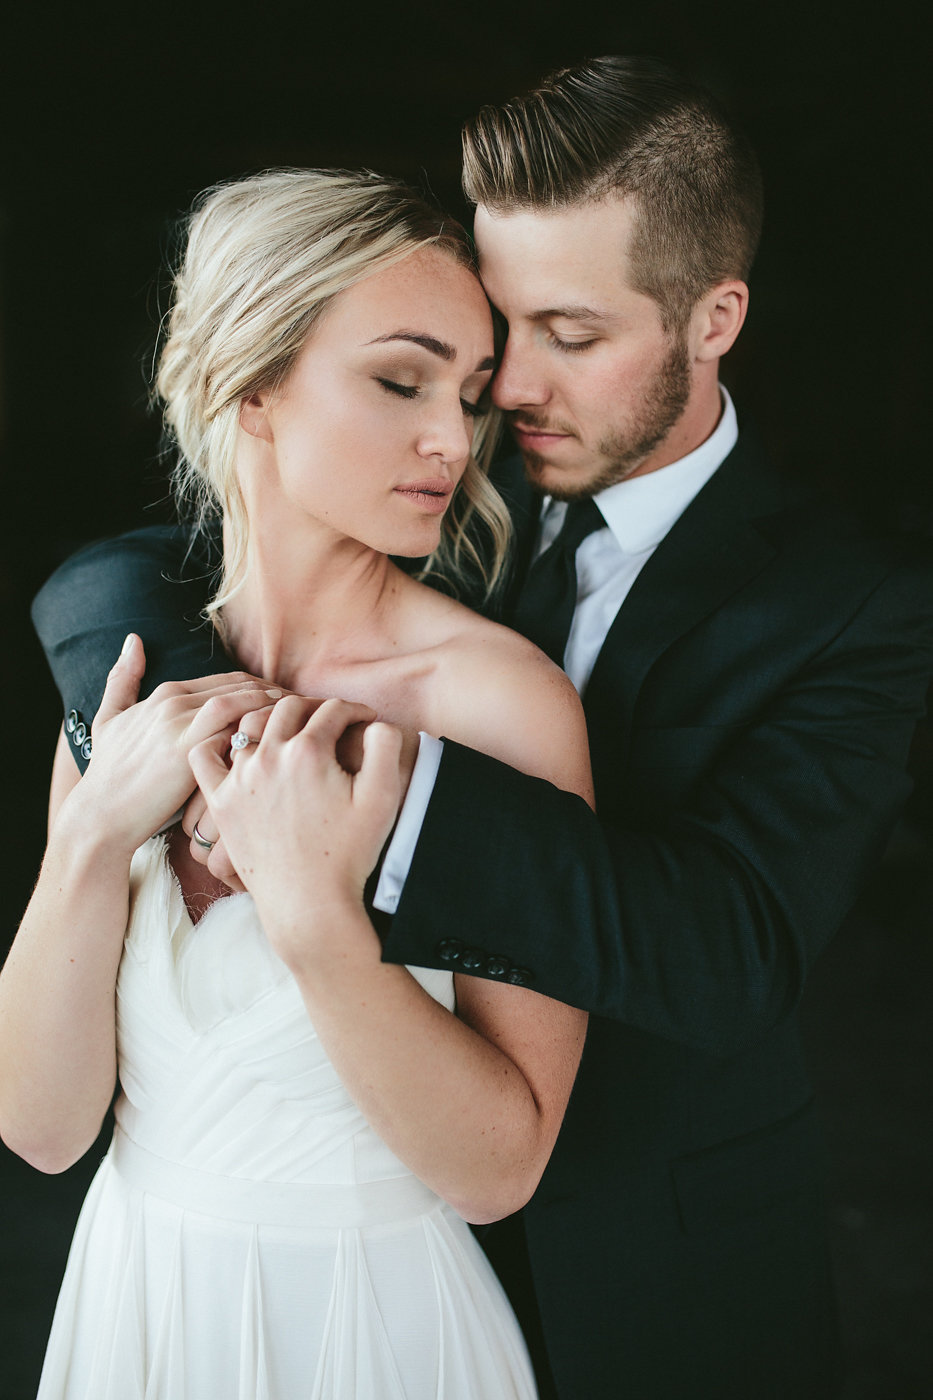 wedding photography - photo by Hannah Victoria Photography http://ruffledblog.com/rich-toned-industrial-wedding-inspiration